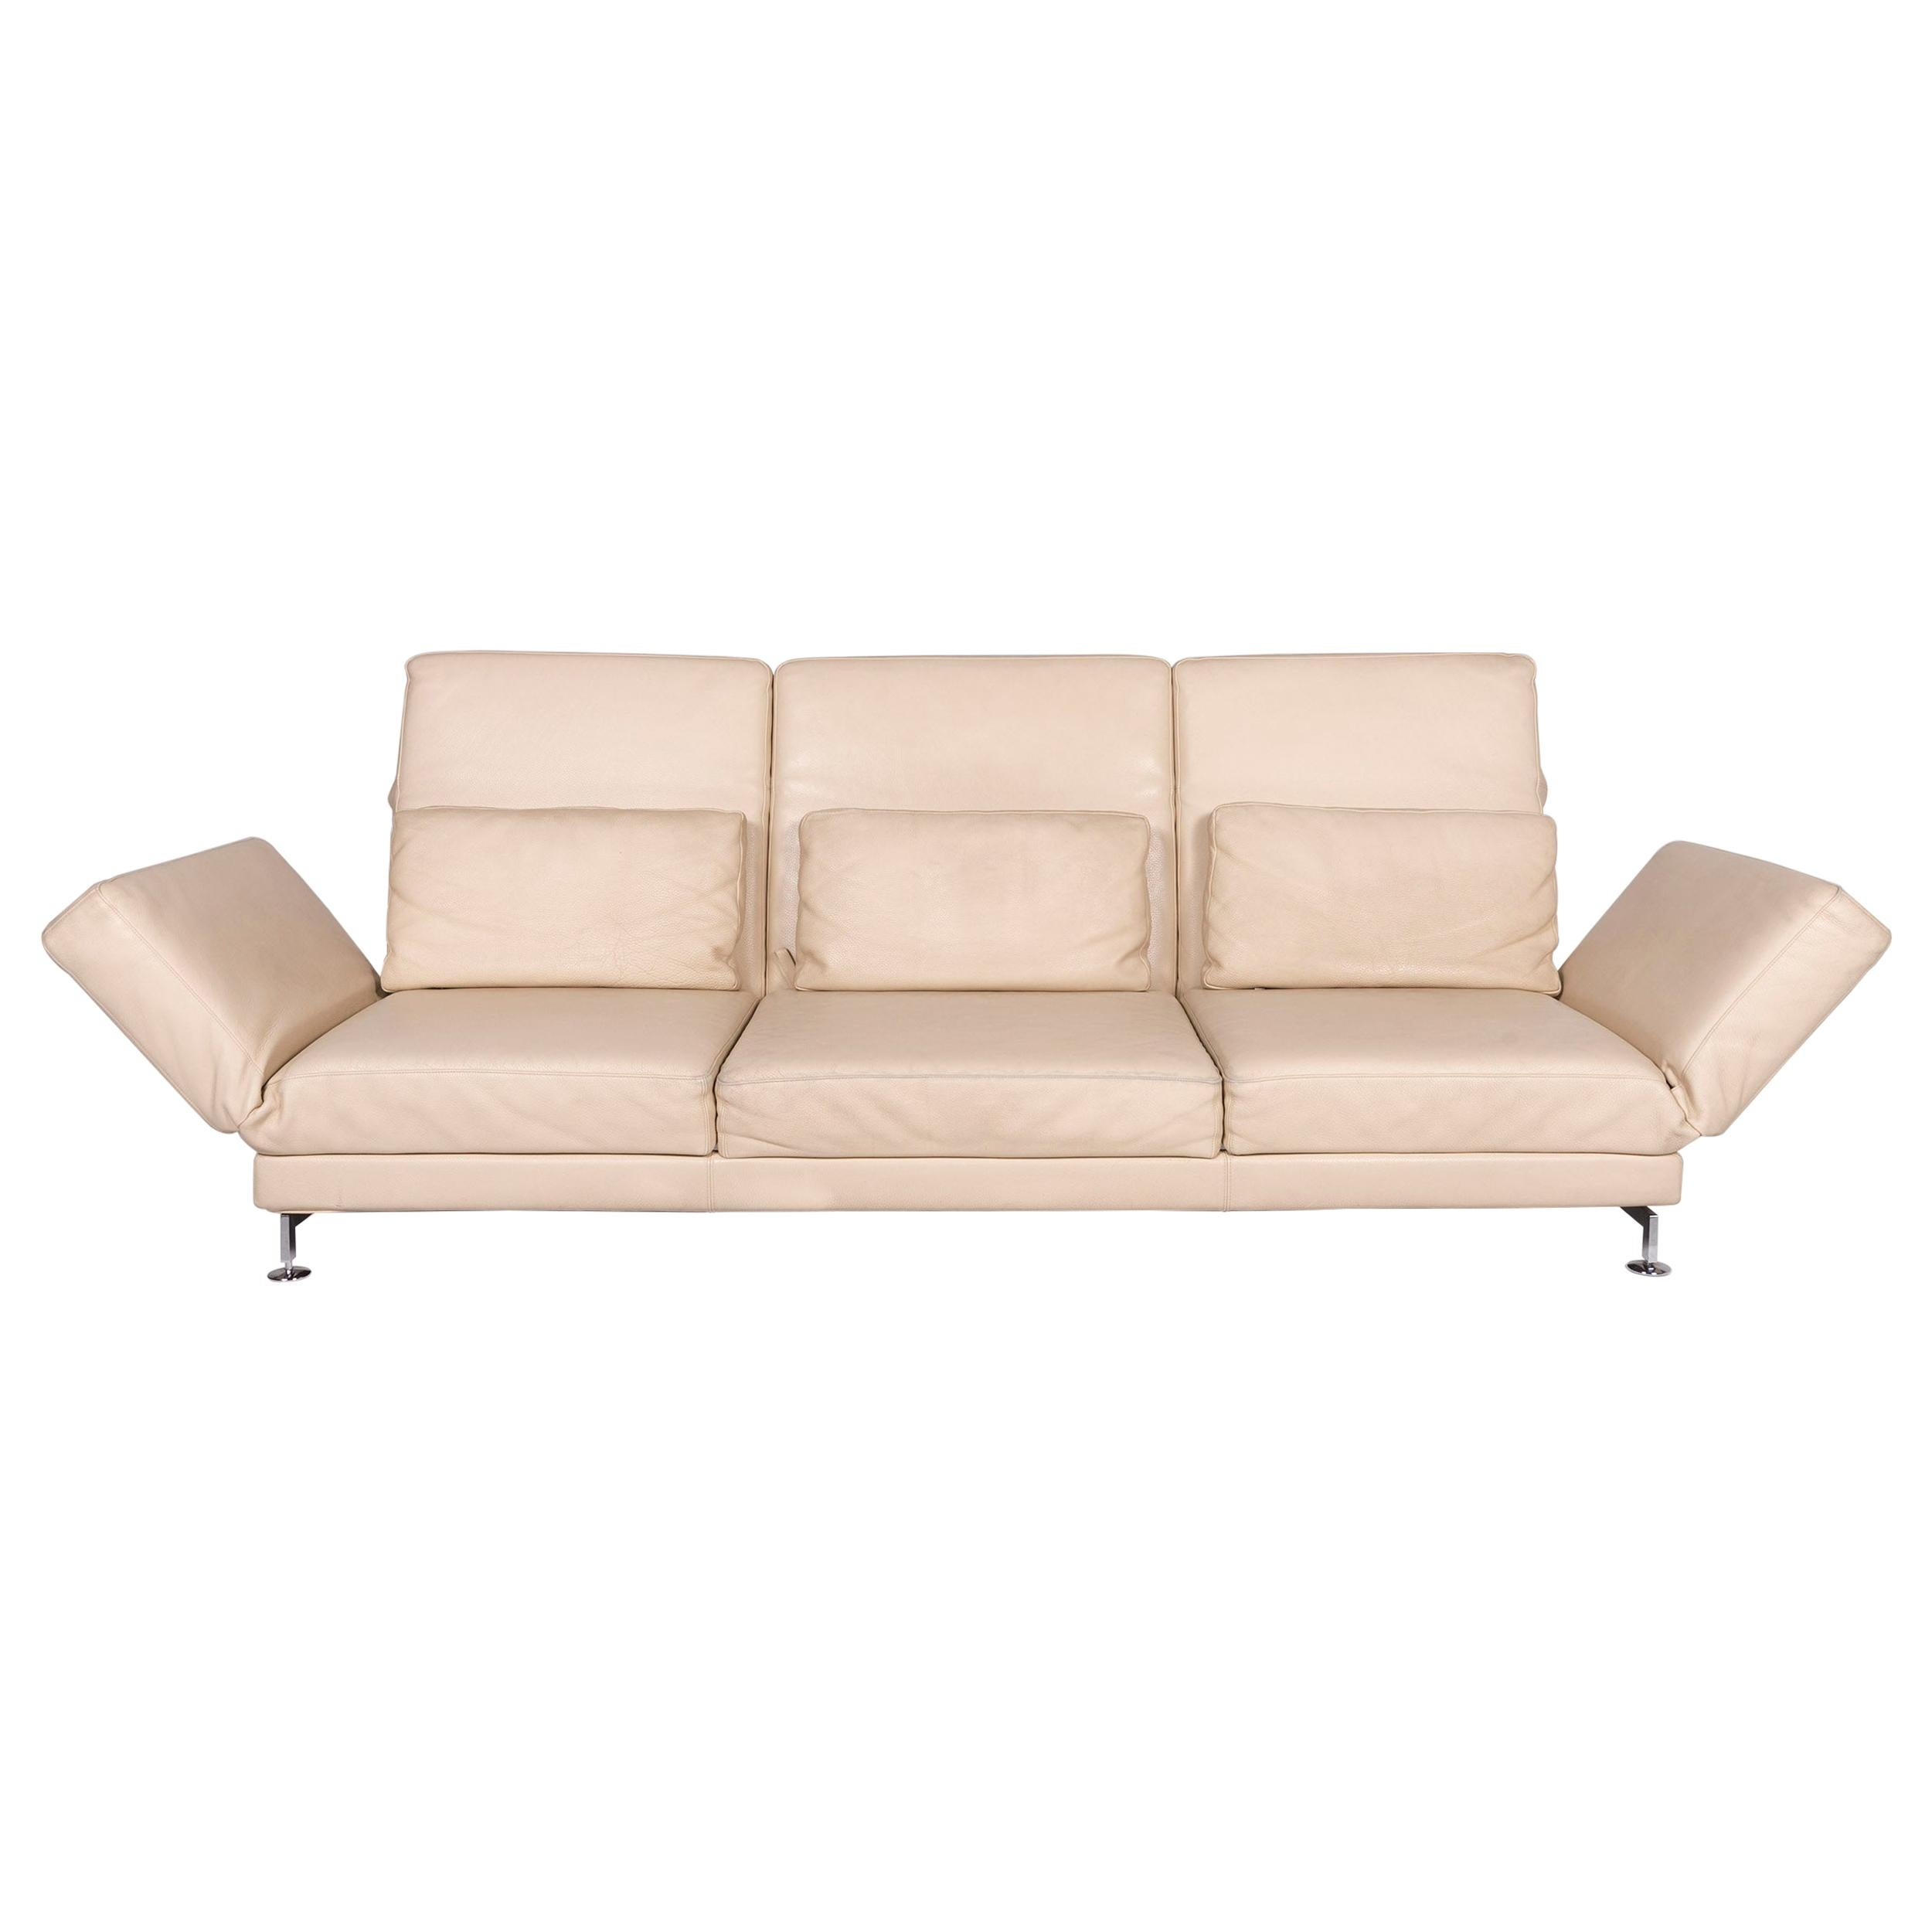 Brühl & Sippold Moule Leather Sofa Beige Three-Seat Relax Function Couch